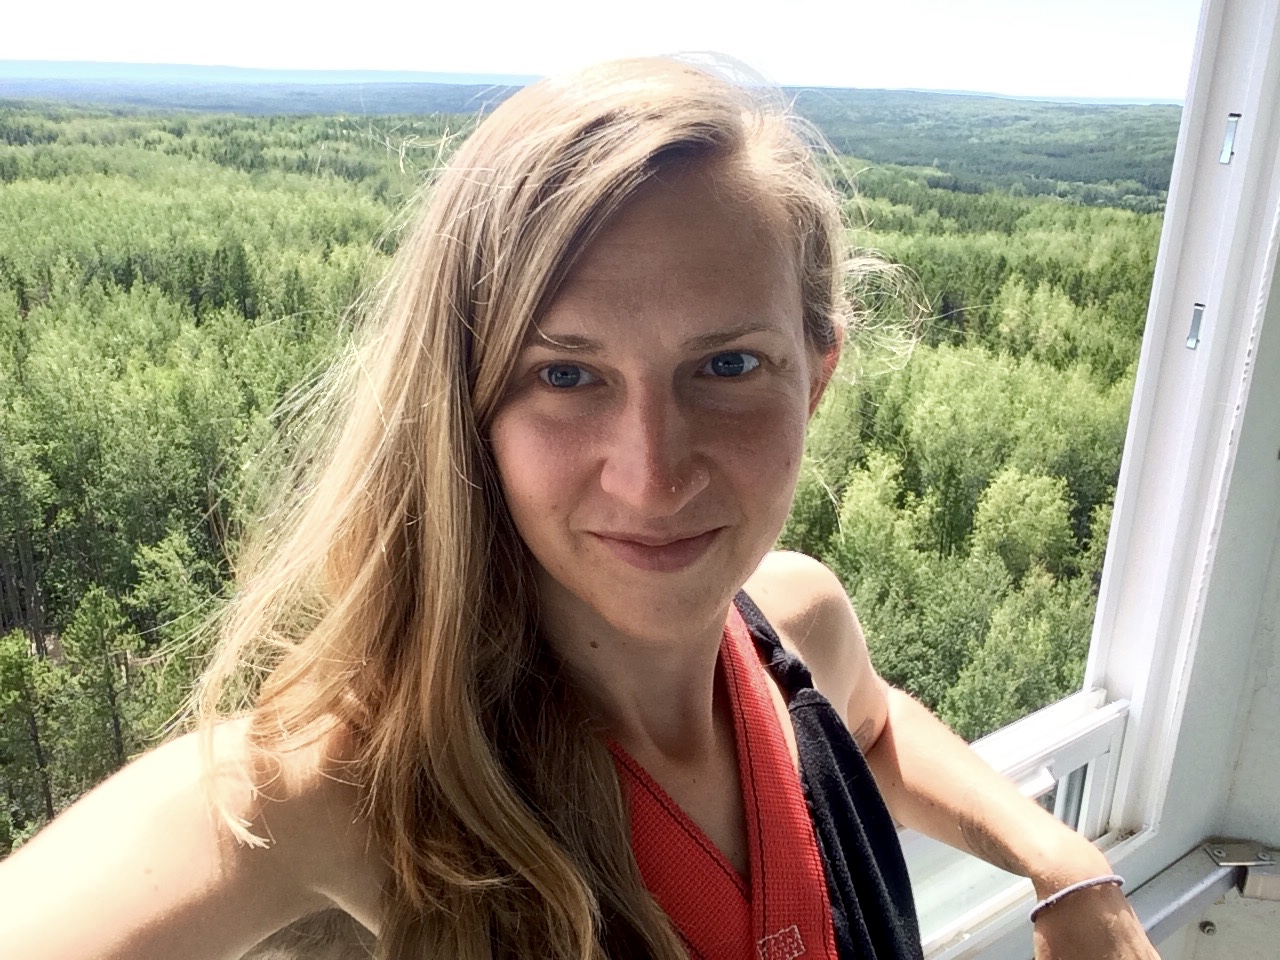 The writer in her perch: a small glass dome in the sky where I can see out for 40 km radius over the boreal forest.